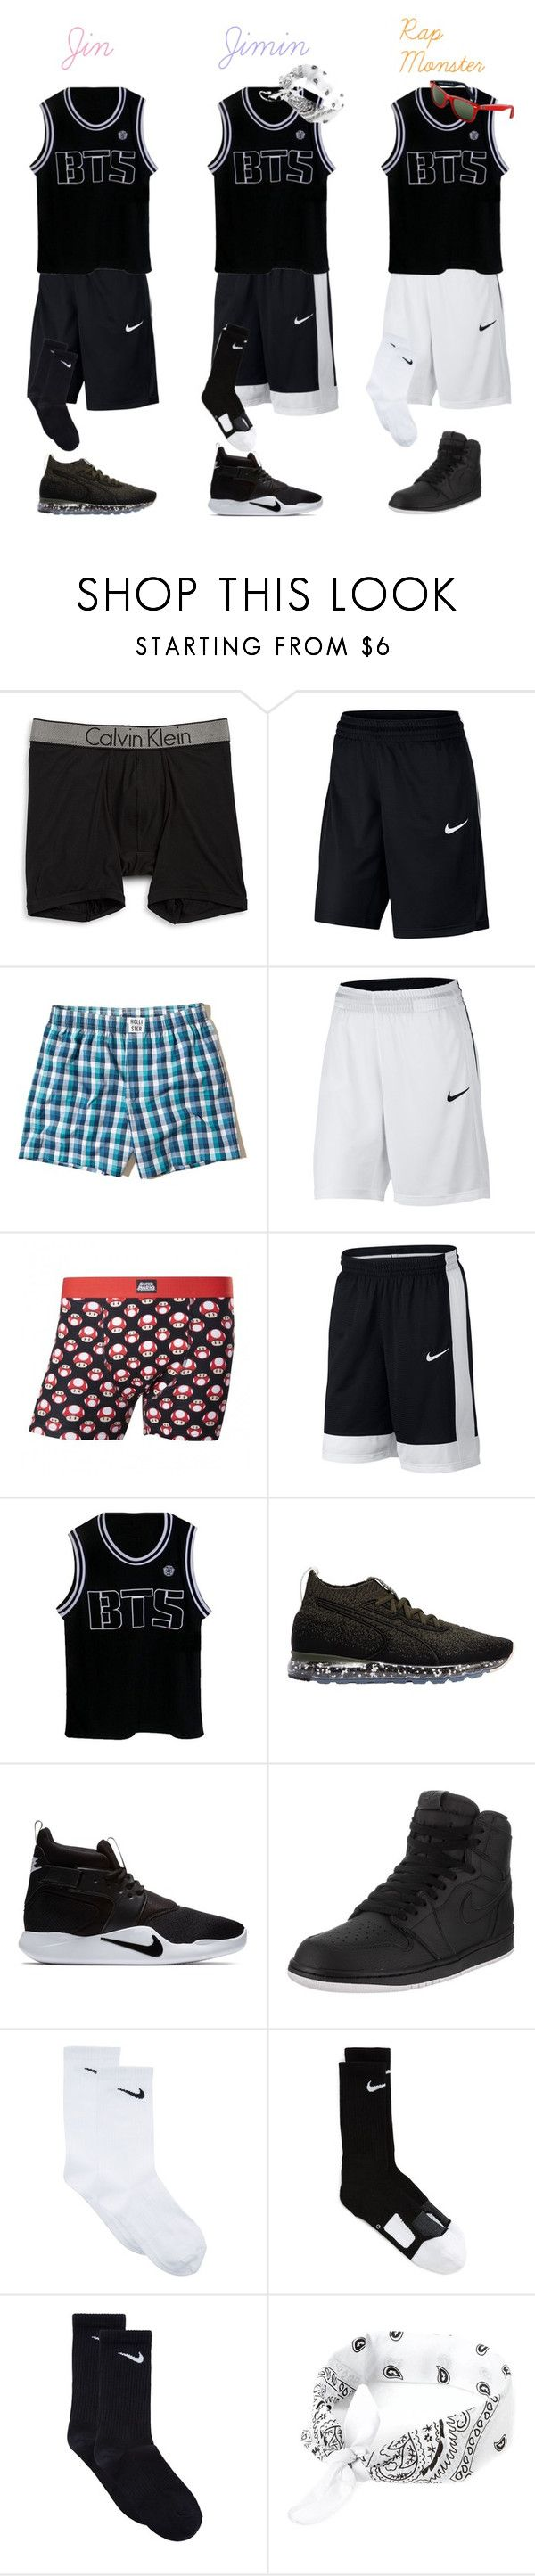 """""""BTS Basketball Uniform (Part Two)"""" by whengaypigsfly ❤ liked on Polyvore featuring Calvin Klein, NIKE, Hollister Co., Puma, Jordan Brand, Ray-Ban, men's fashion and menswear"""